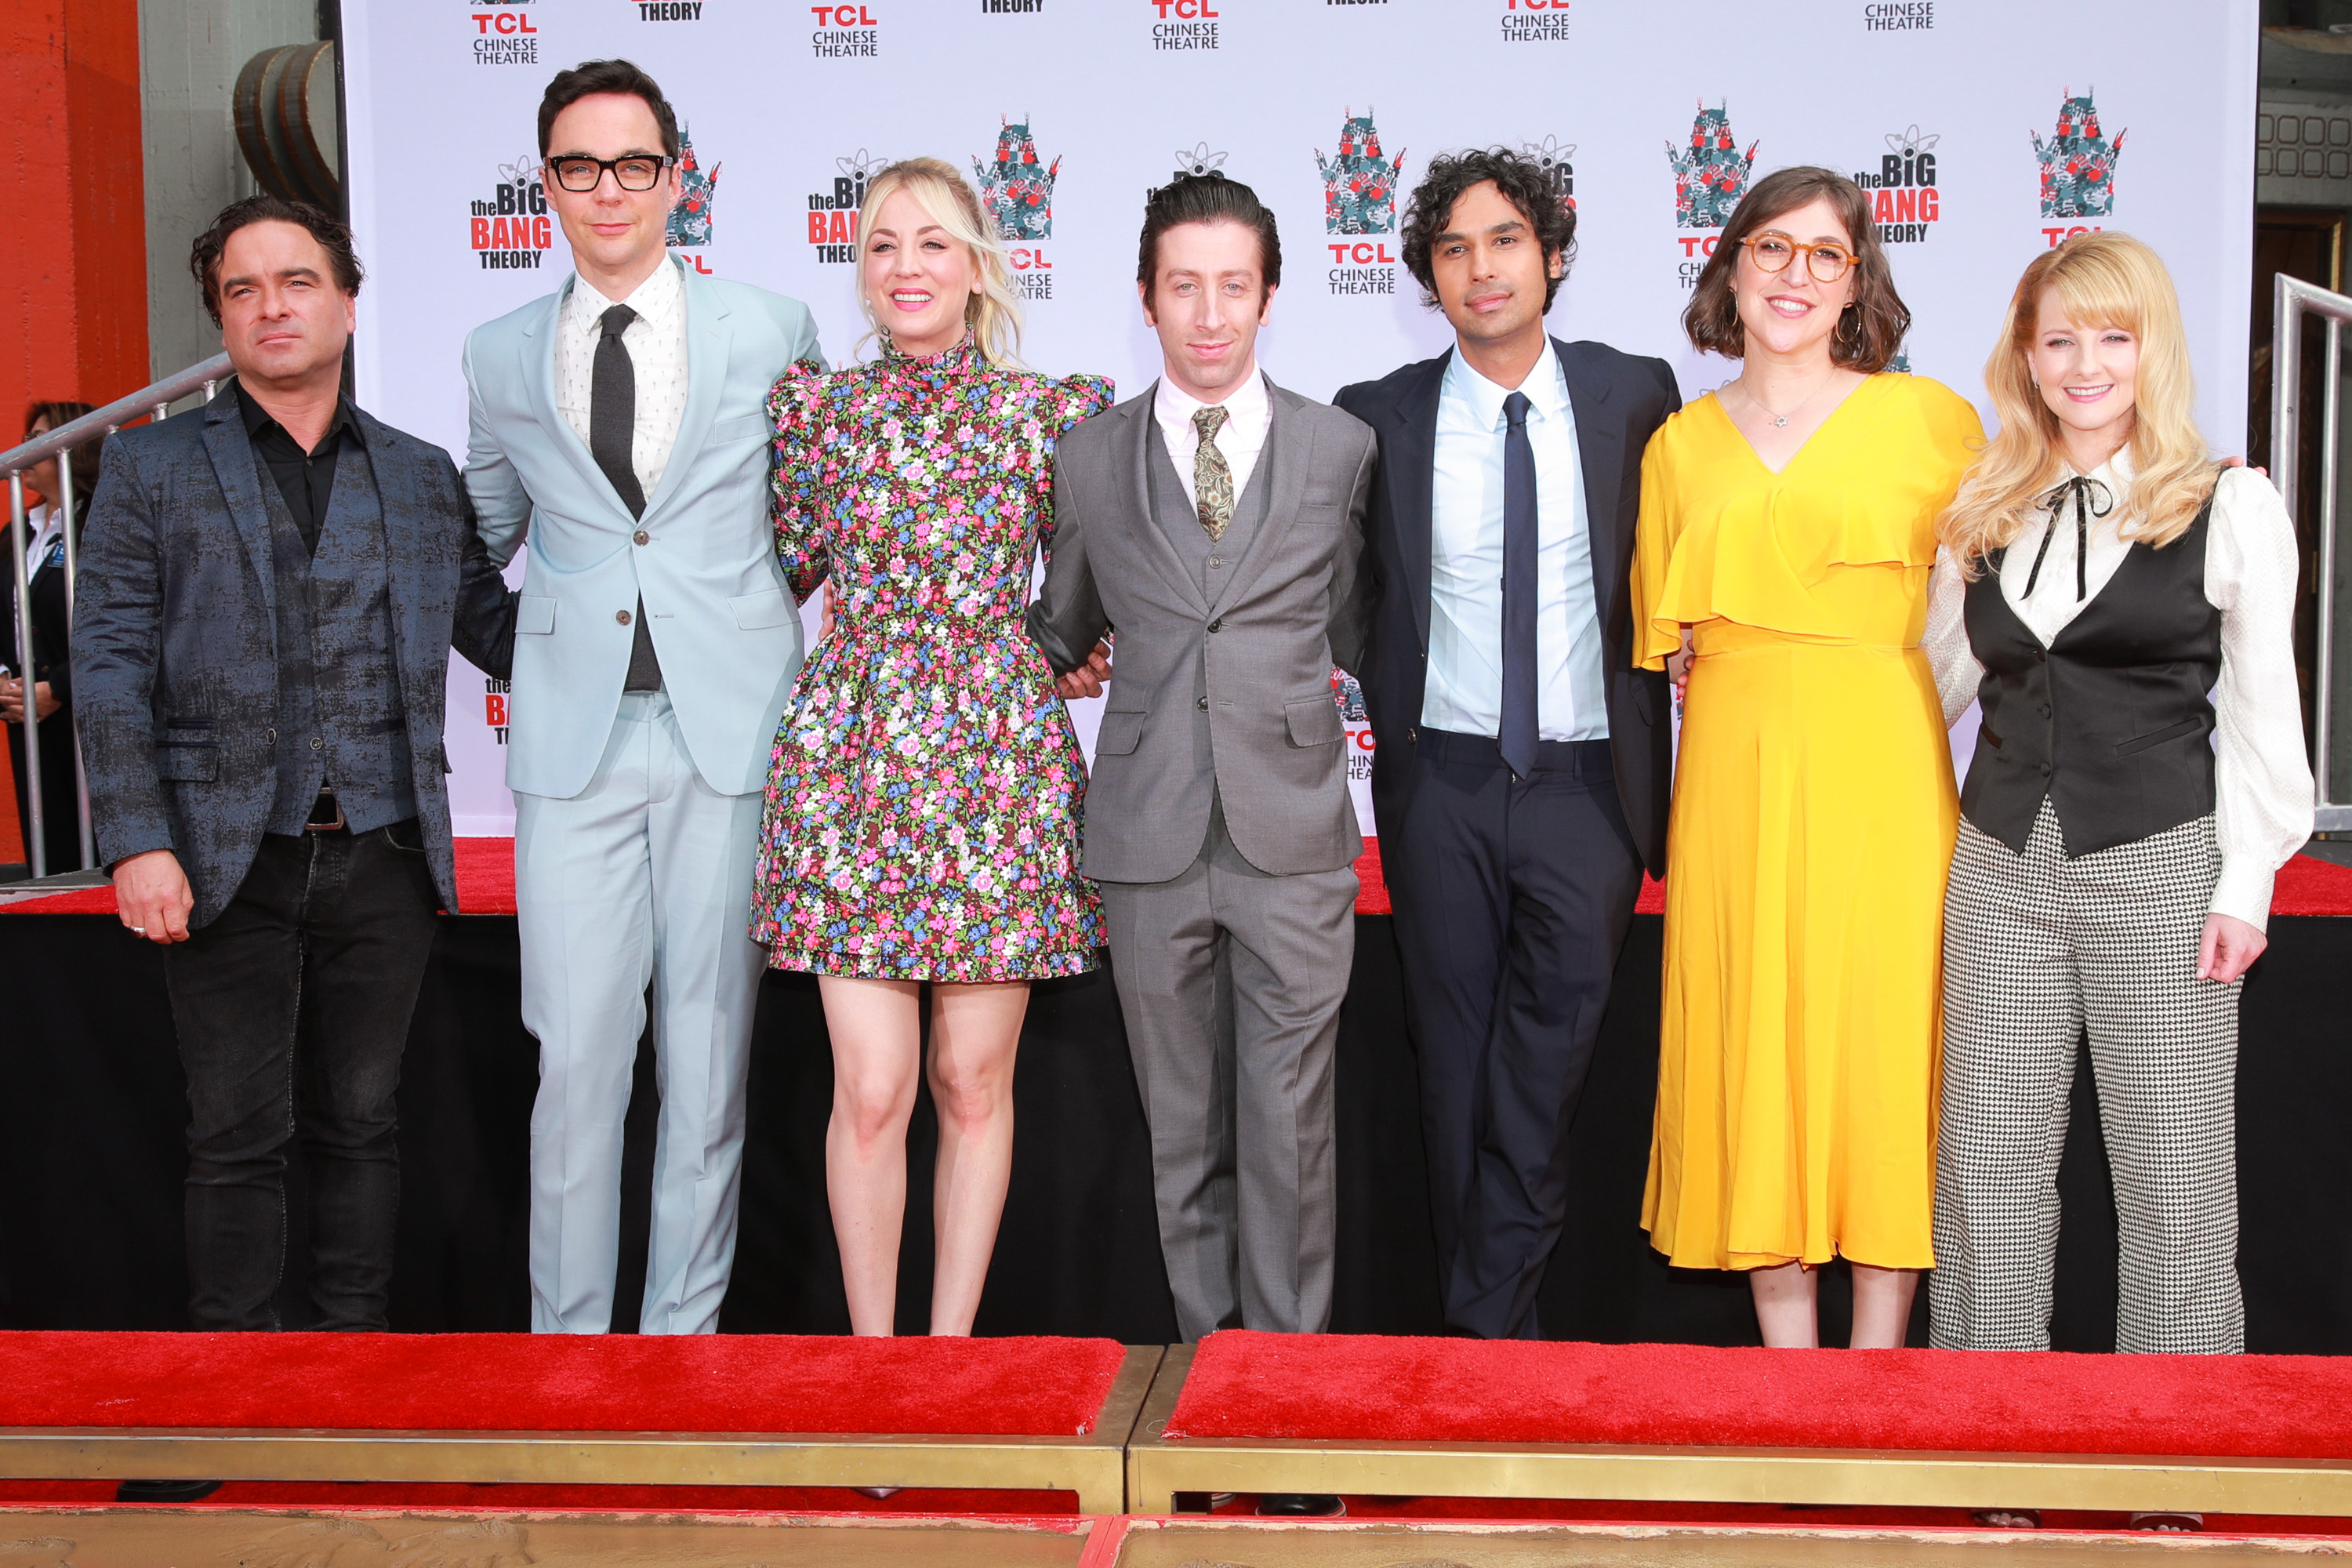 The cast poses after a hand-print ceremony in Hollywood